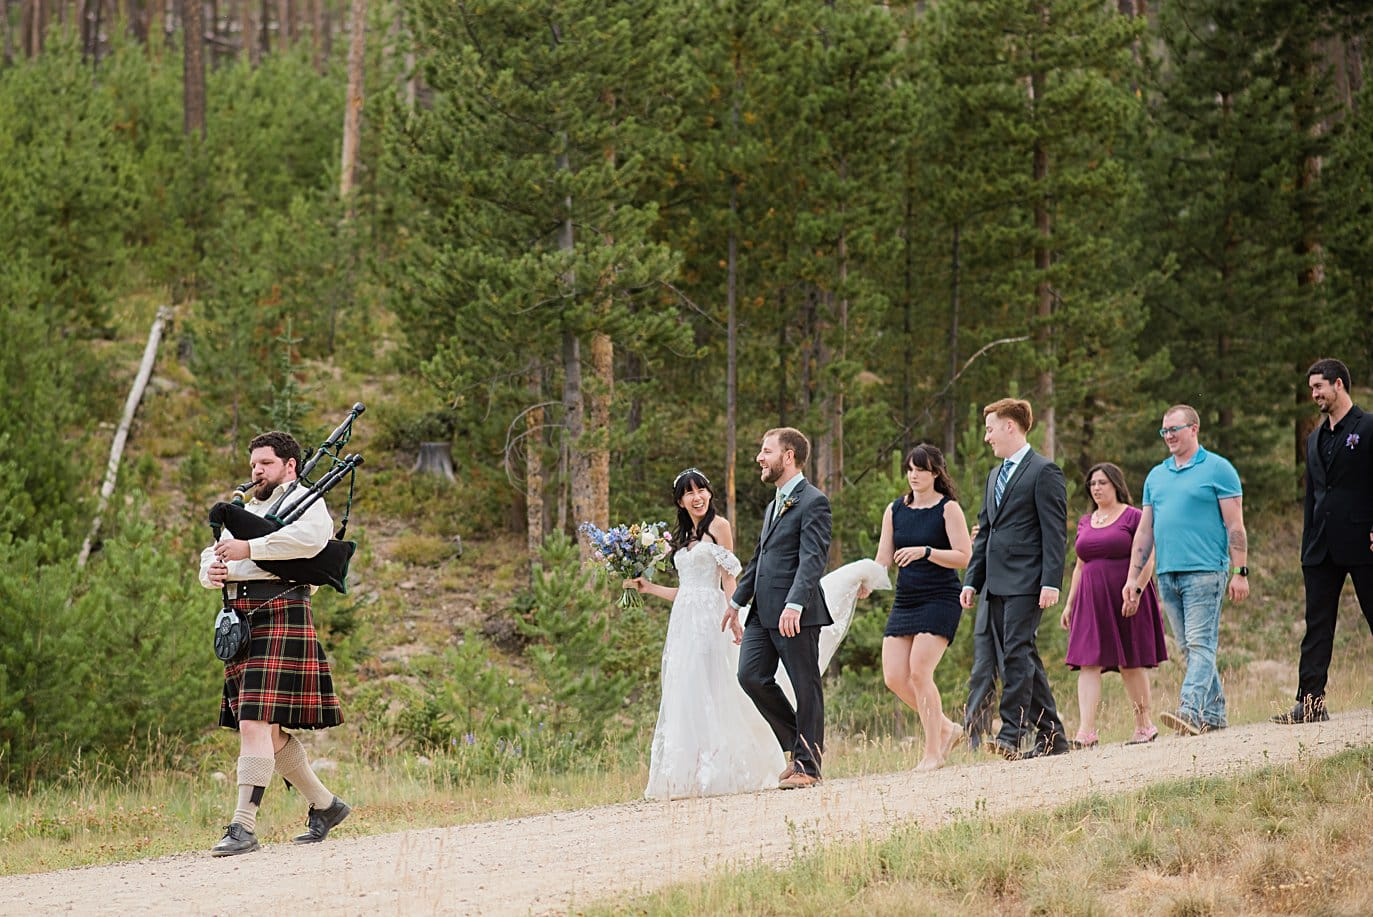 bride and groom walk with friends to wedding ceremony with bagpiper leading the way at intimate Grand Lake wedding by Denver wedding photographer Jennie Crate